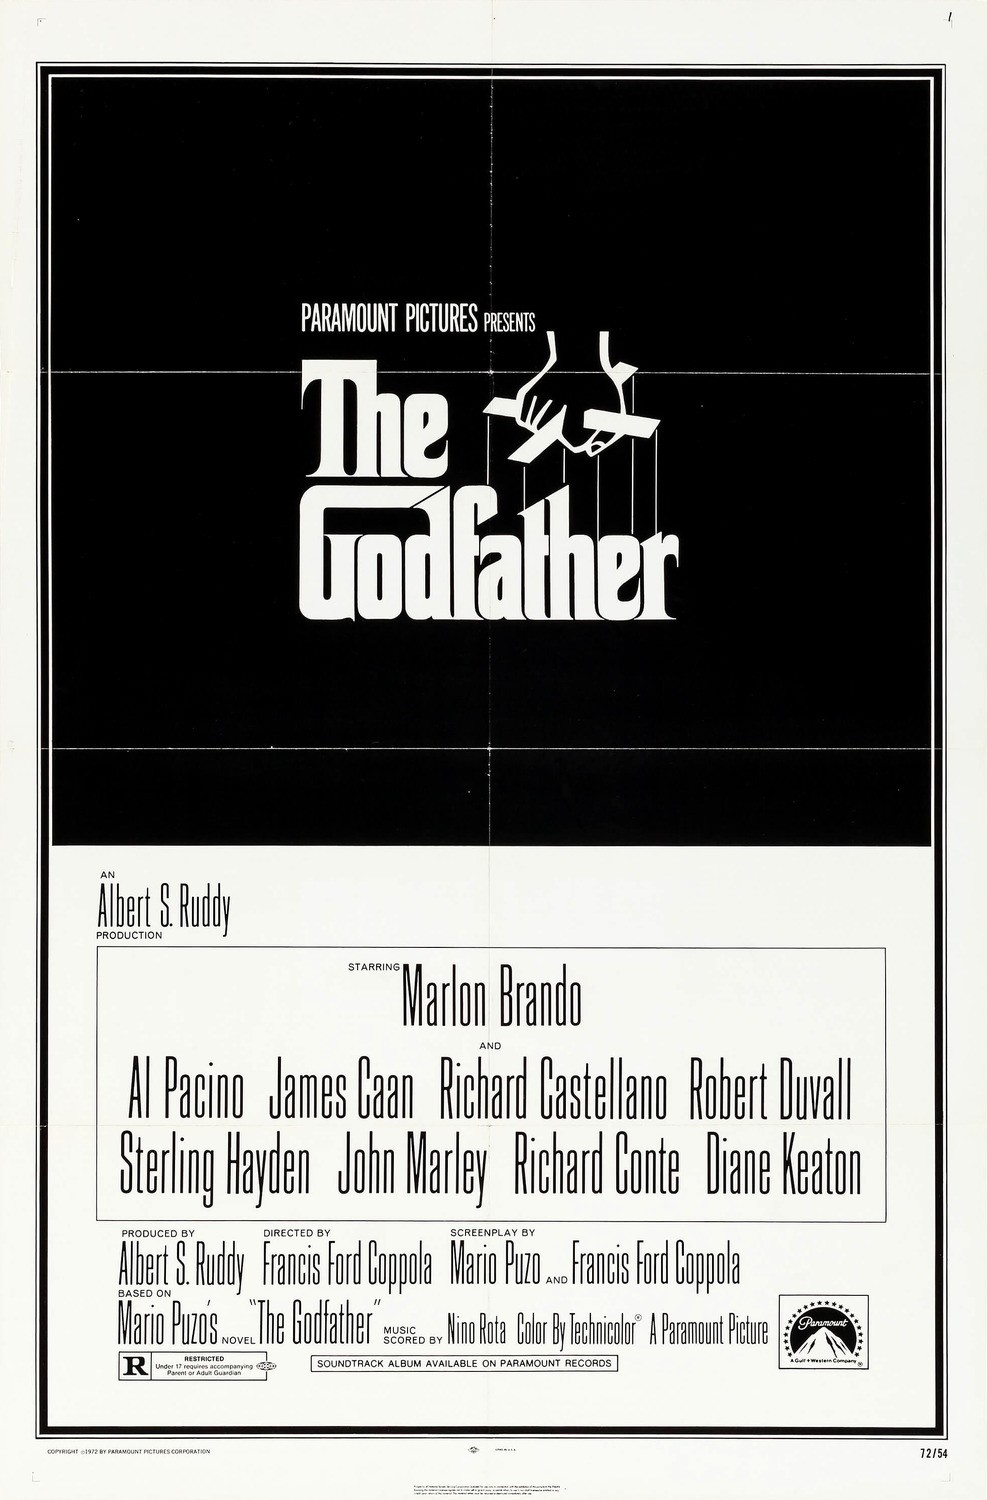 THE GODFATHER [Week Long Engagement]